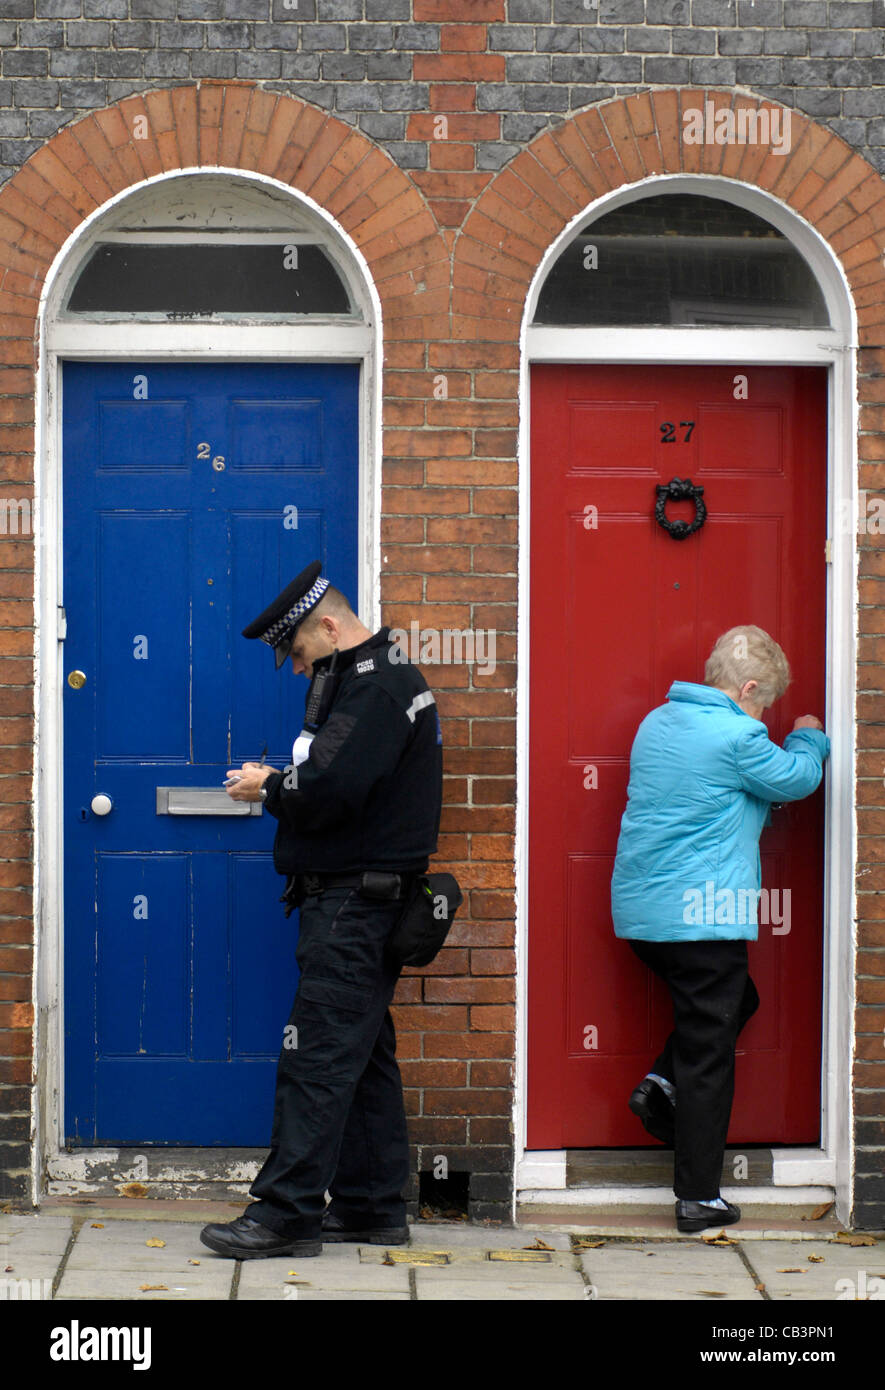 Police door to door inquiries community policing - Stock Image